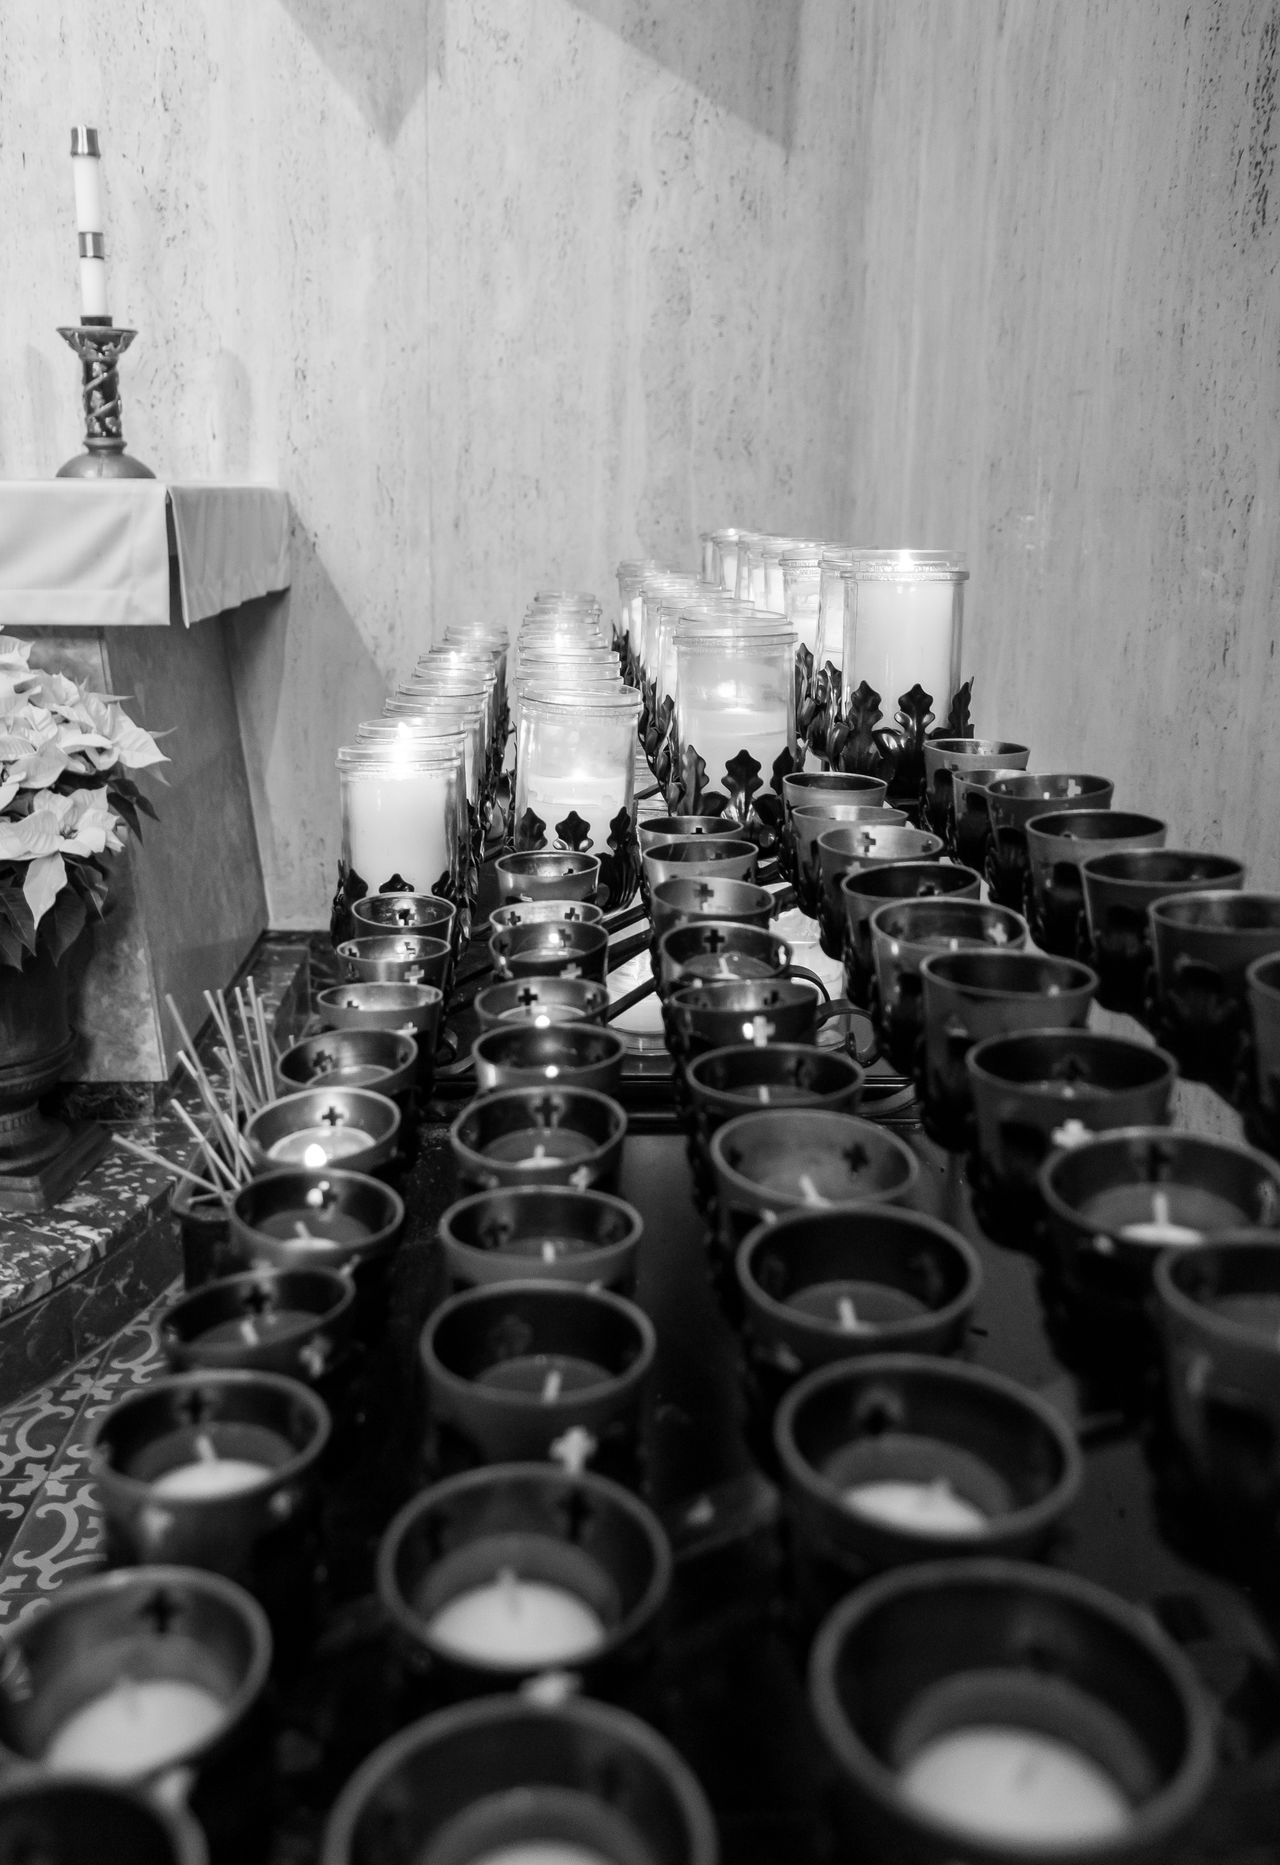 Black Black & White Black And White Blackandwhite Candles Church Churches In A Row Indoors  No People Order Pattern Silence